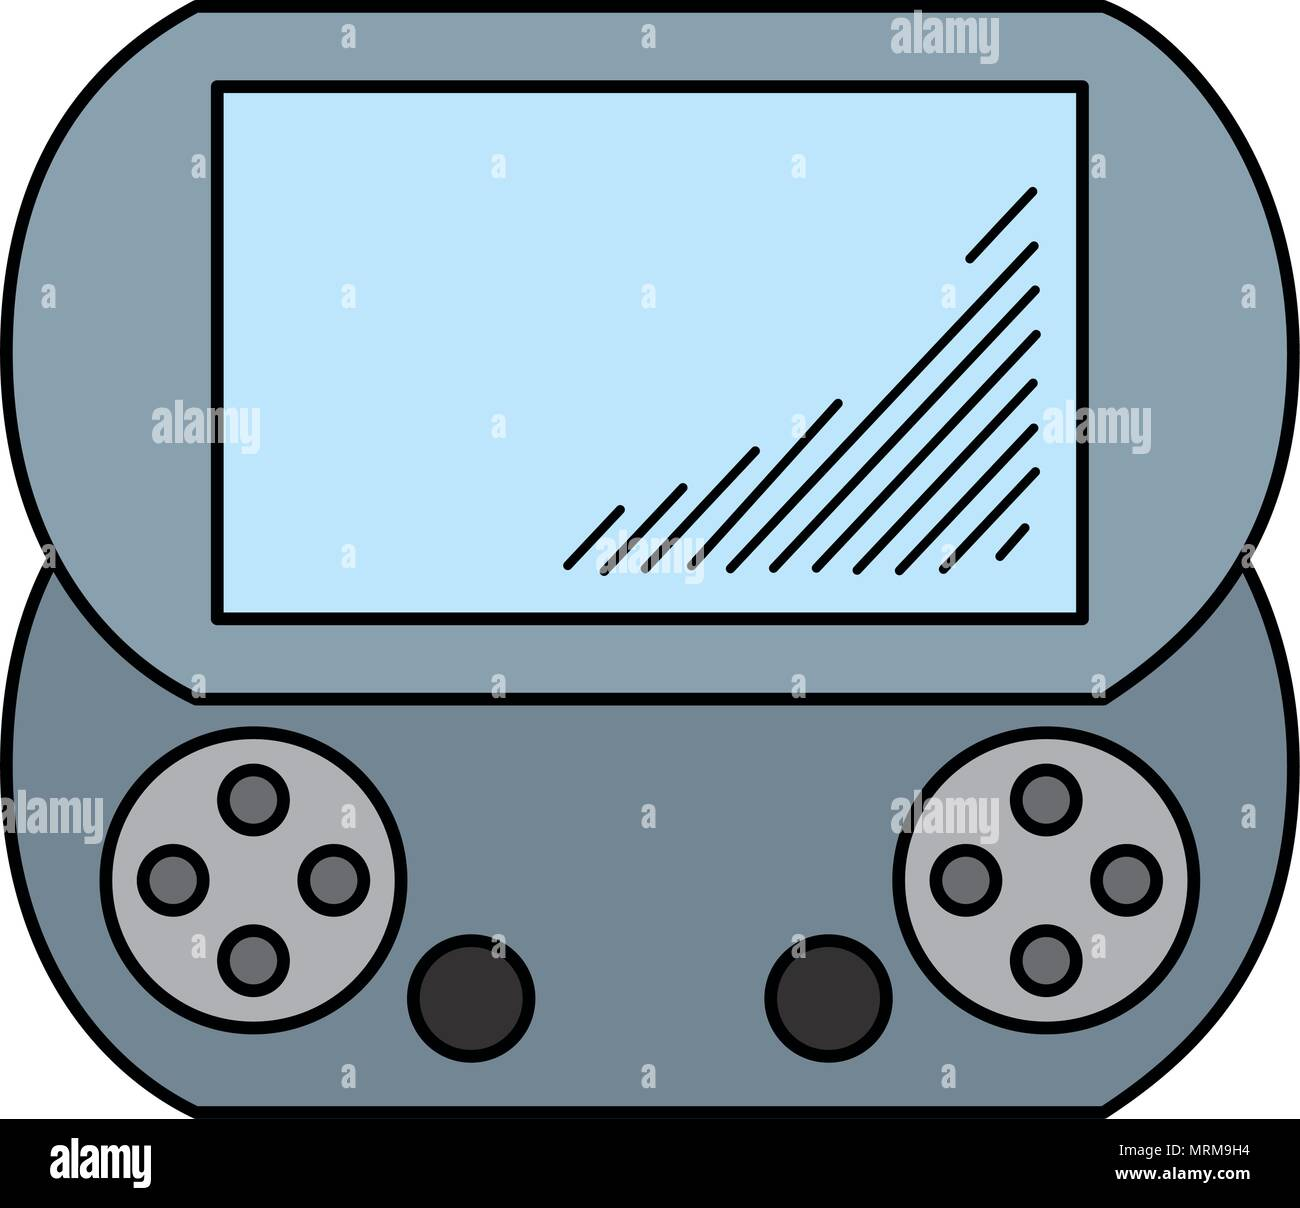 Handheld Game Console Stock Photos & Handheld Game Console Stock